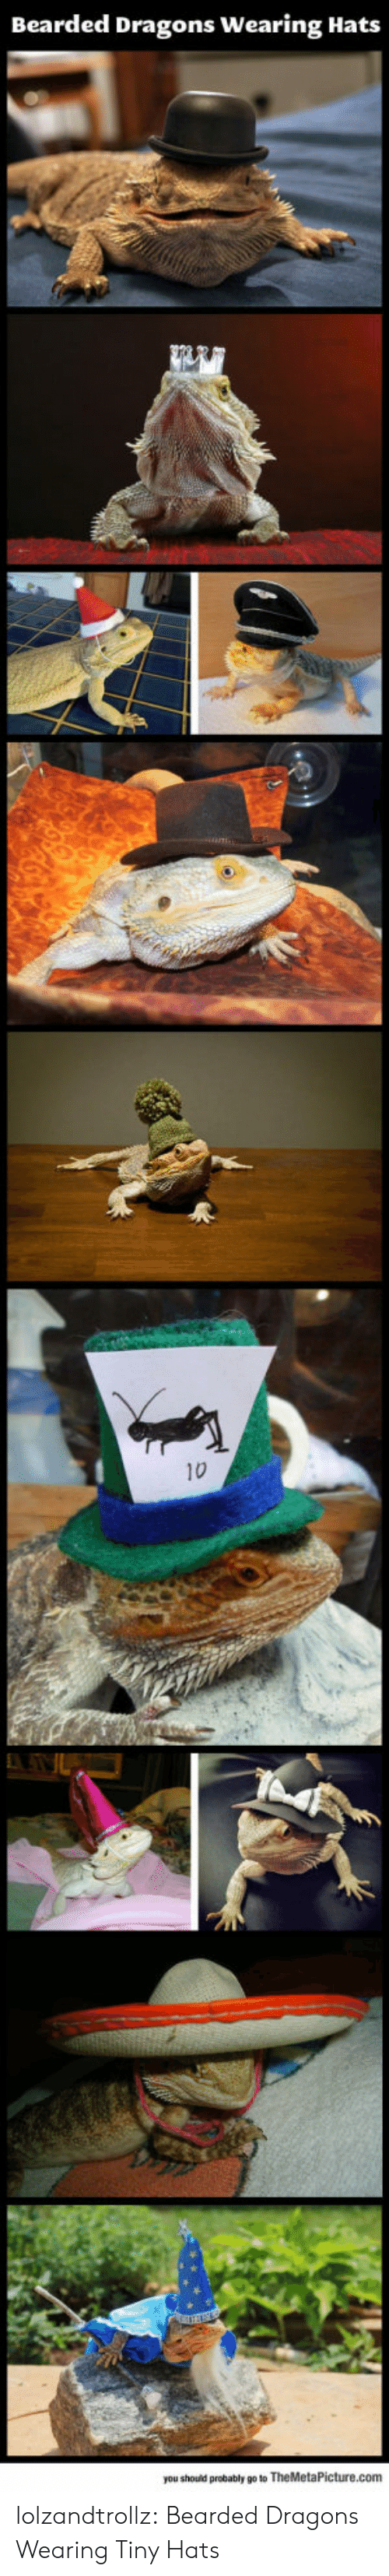 hats: Bearded Dragons Wearing Hats  10  you should probably go to TheMetaPicture.com lolzandtrollz:  Bearded Dragons Wearing Tiny Hats